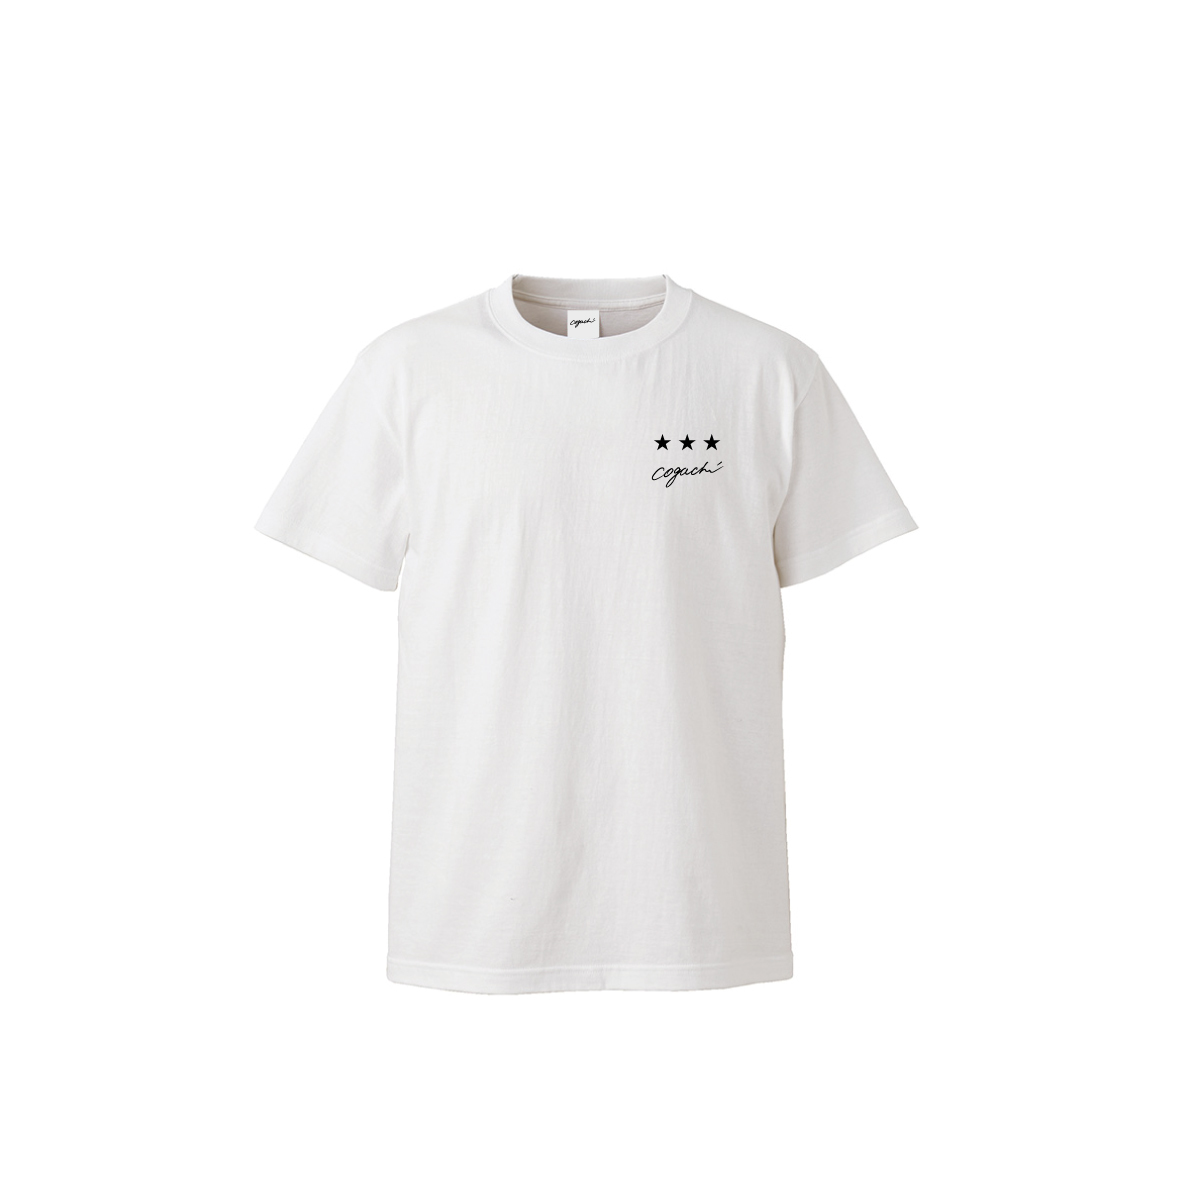 ST T-shirt(WHITE)